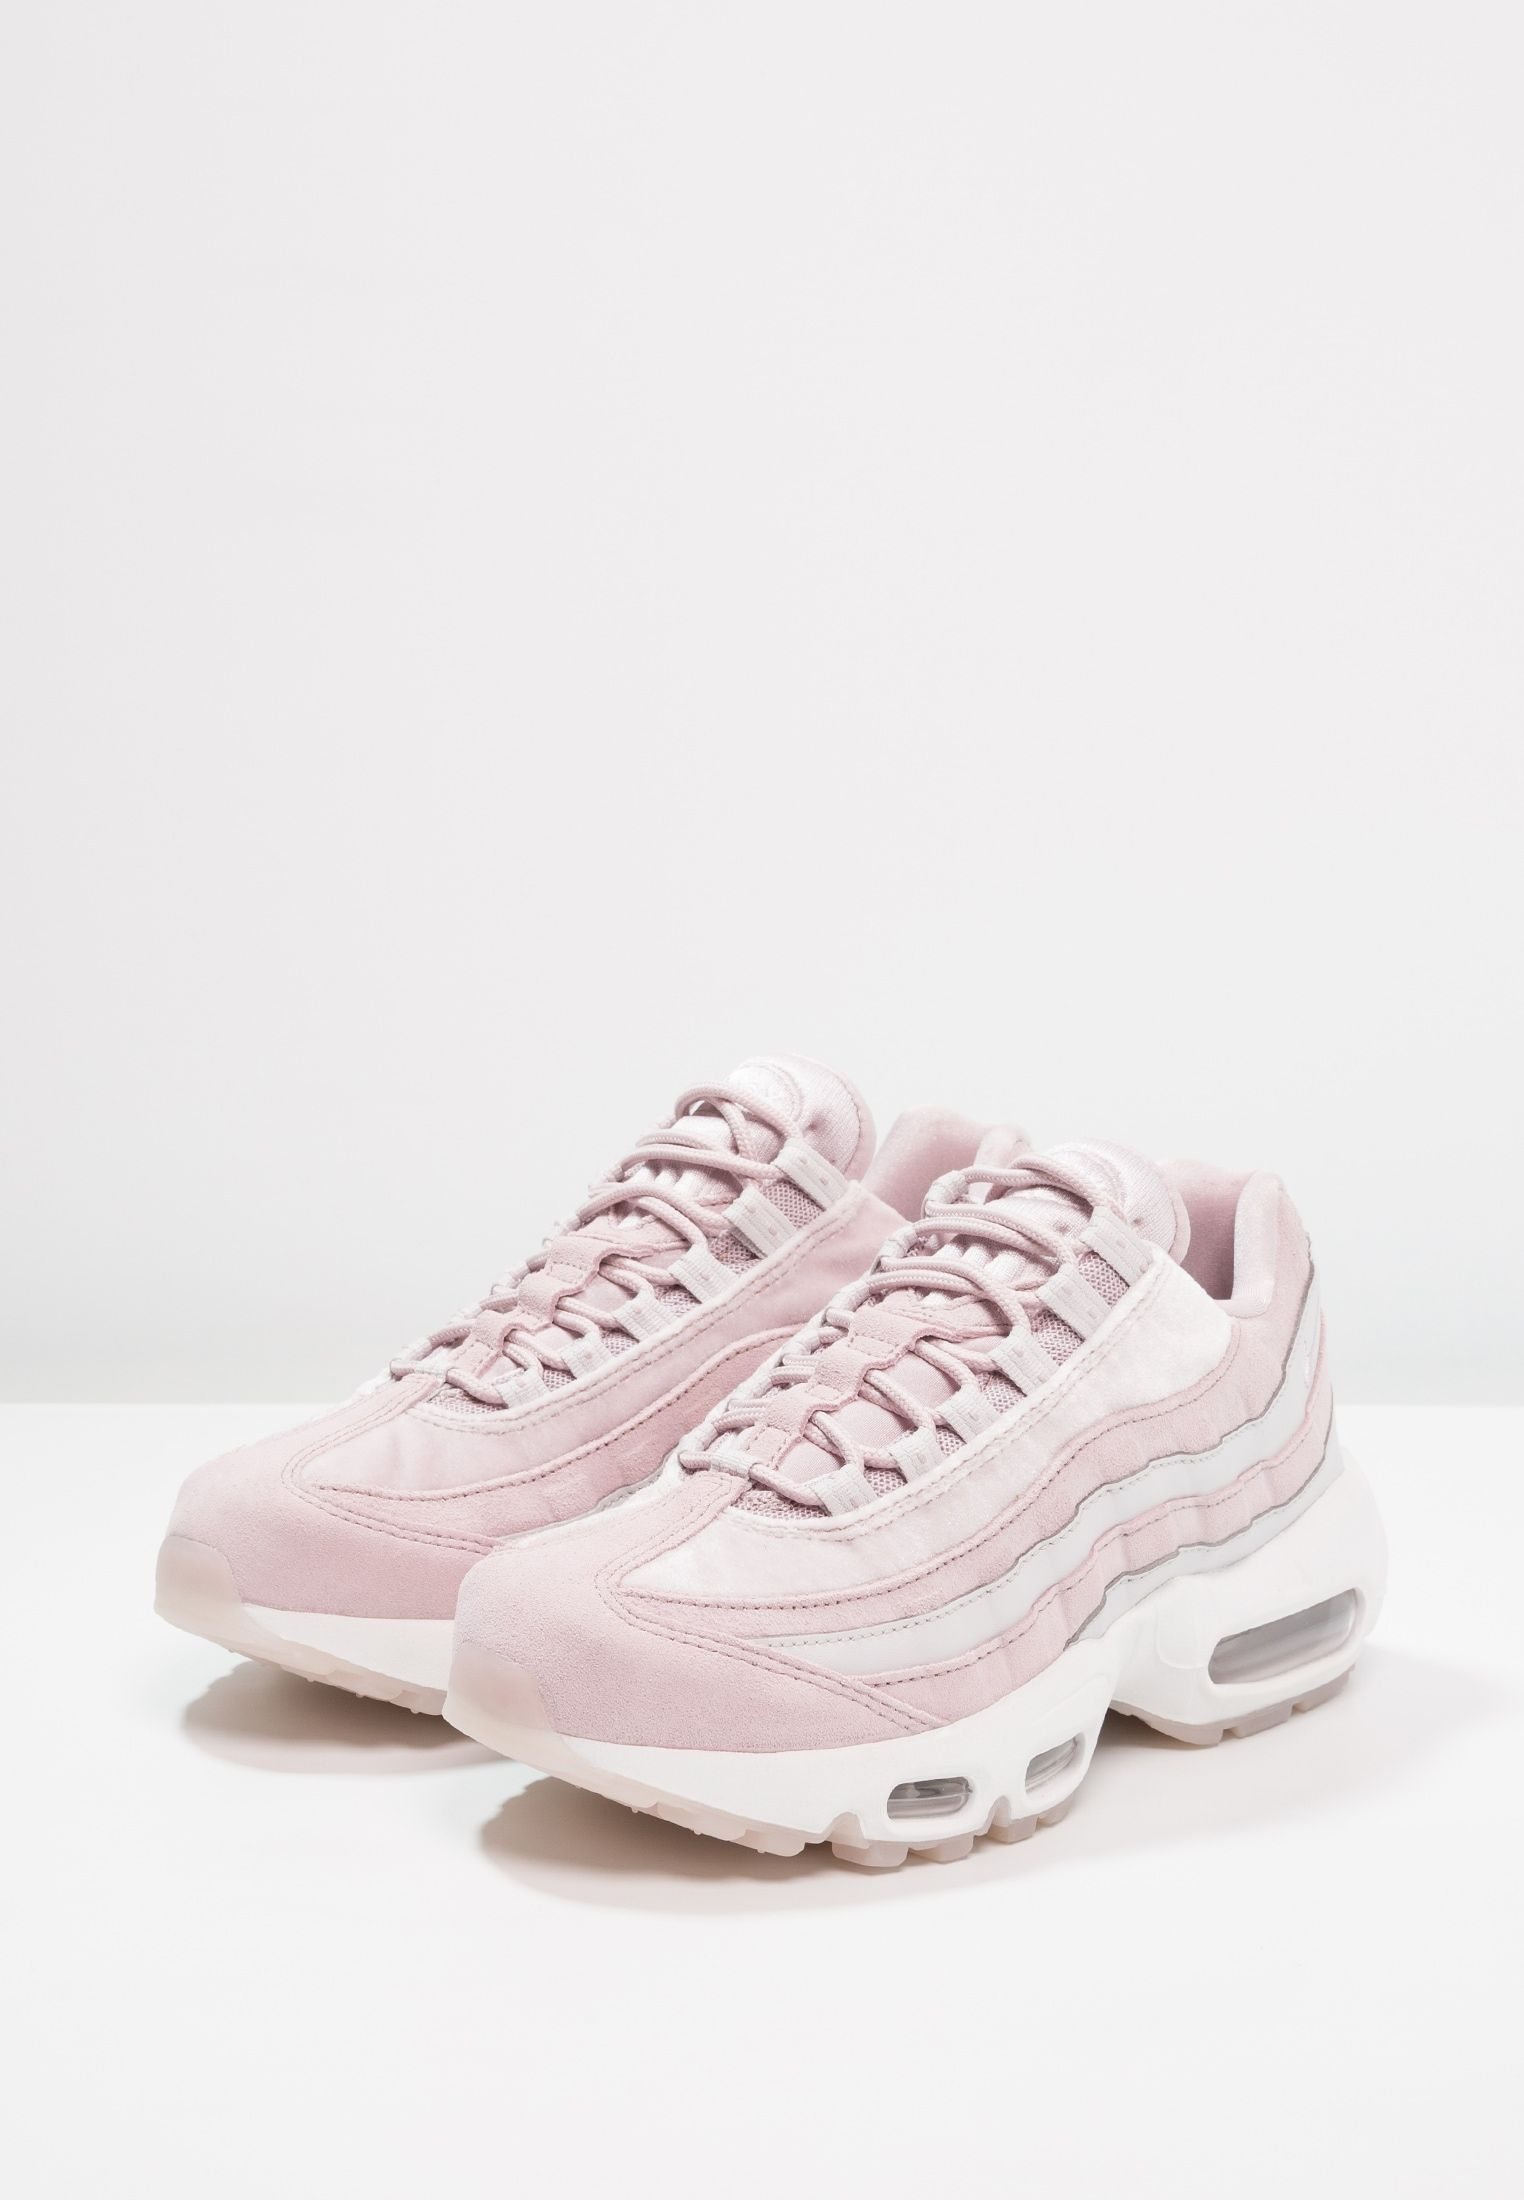 size 40 5ffde 8adc3 Nike Sportswear AIR MAX 95 - Sneakers - particle rose vast grey summit white